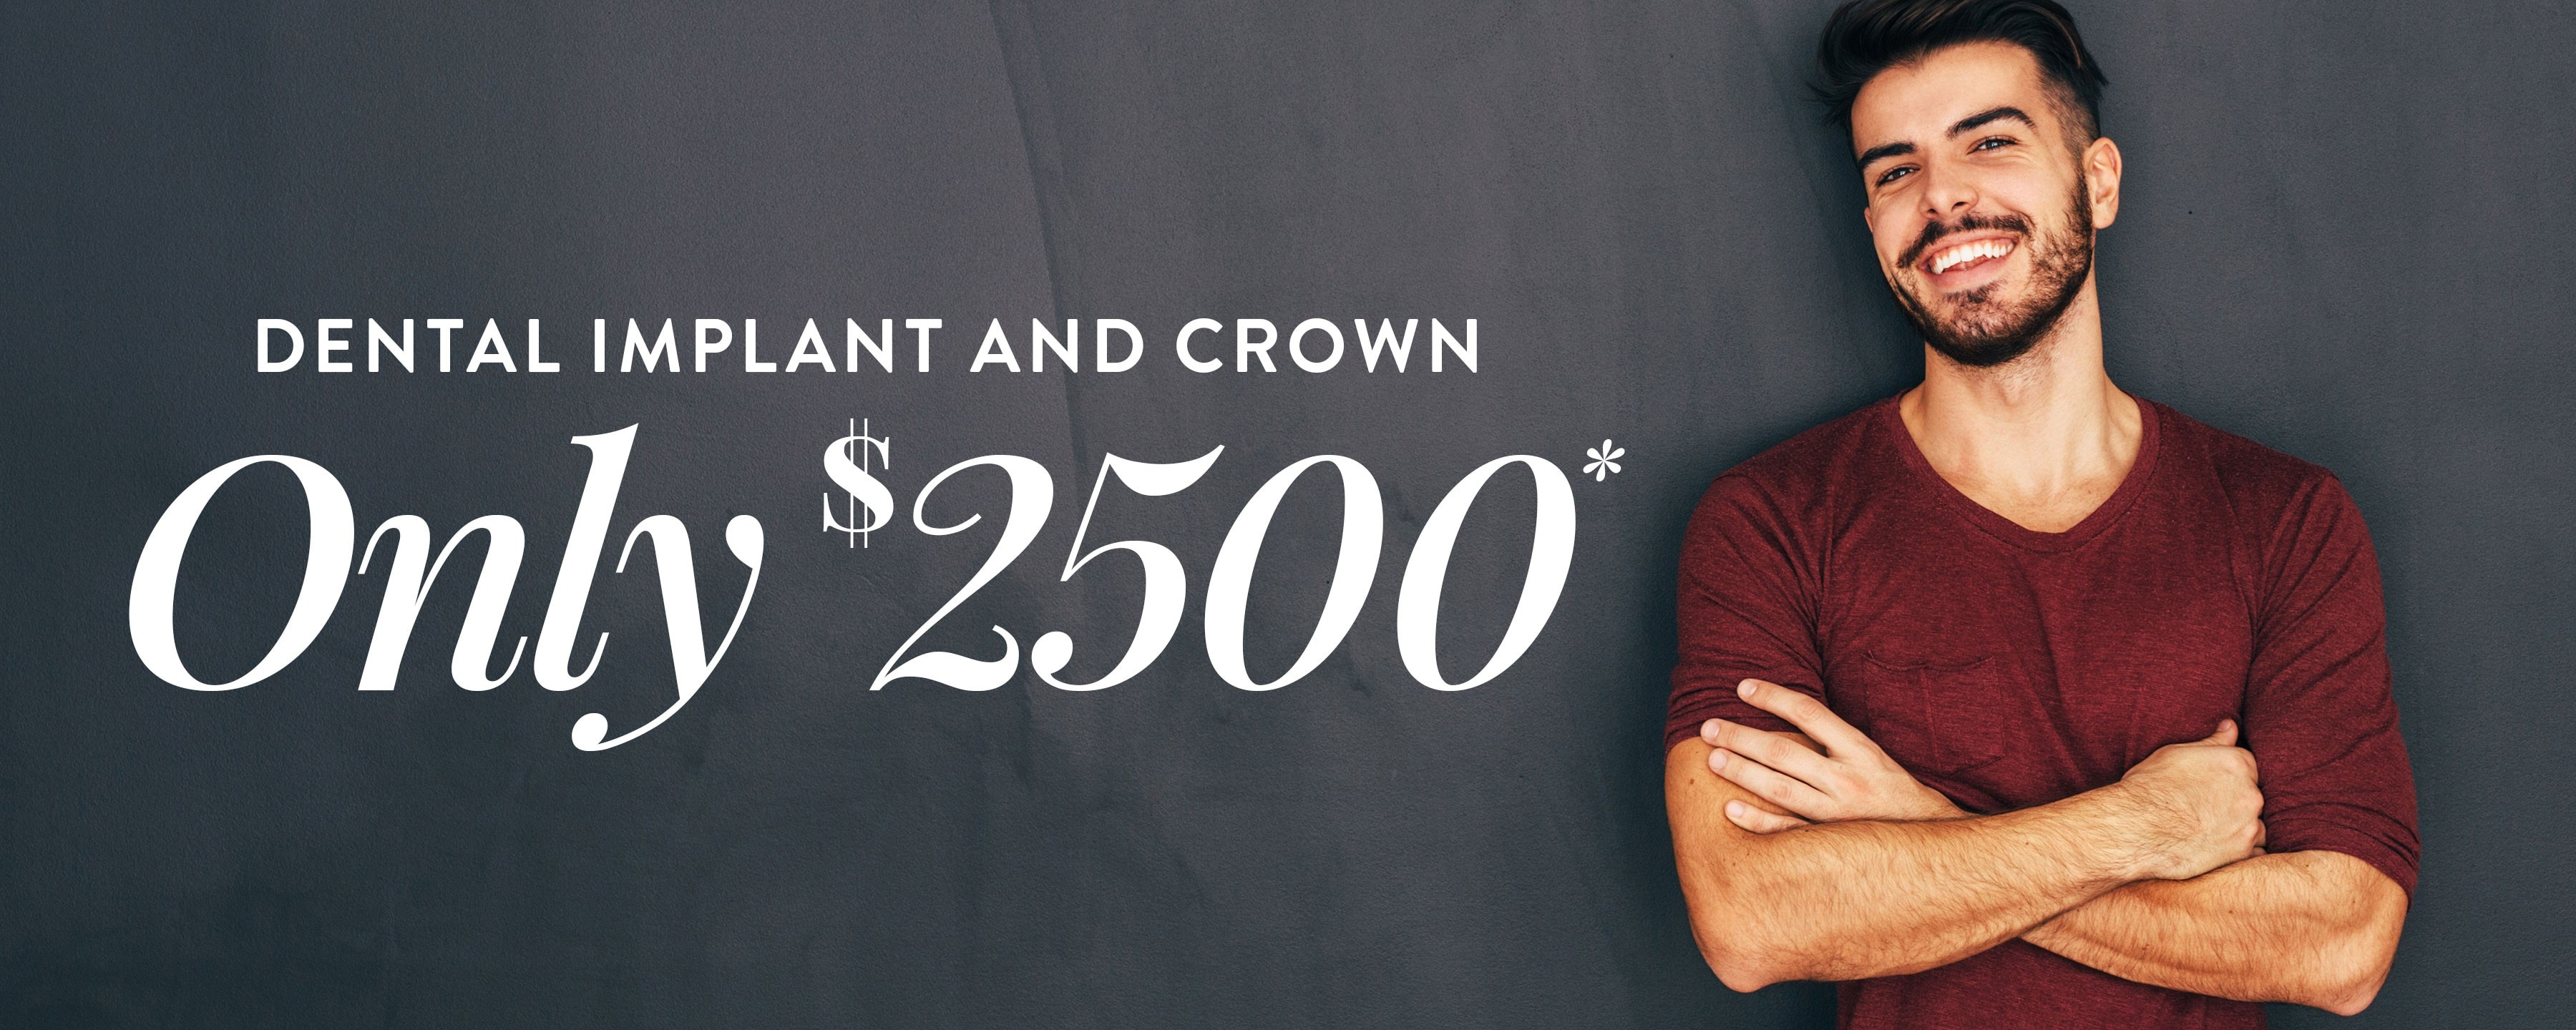 Dental Implant and Crown – Only $2500!*